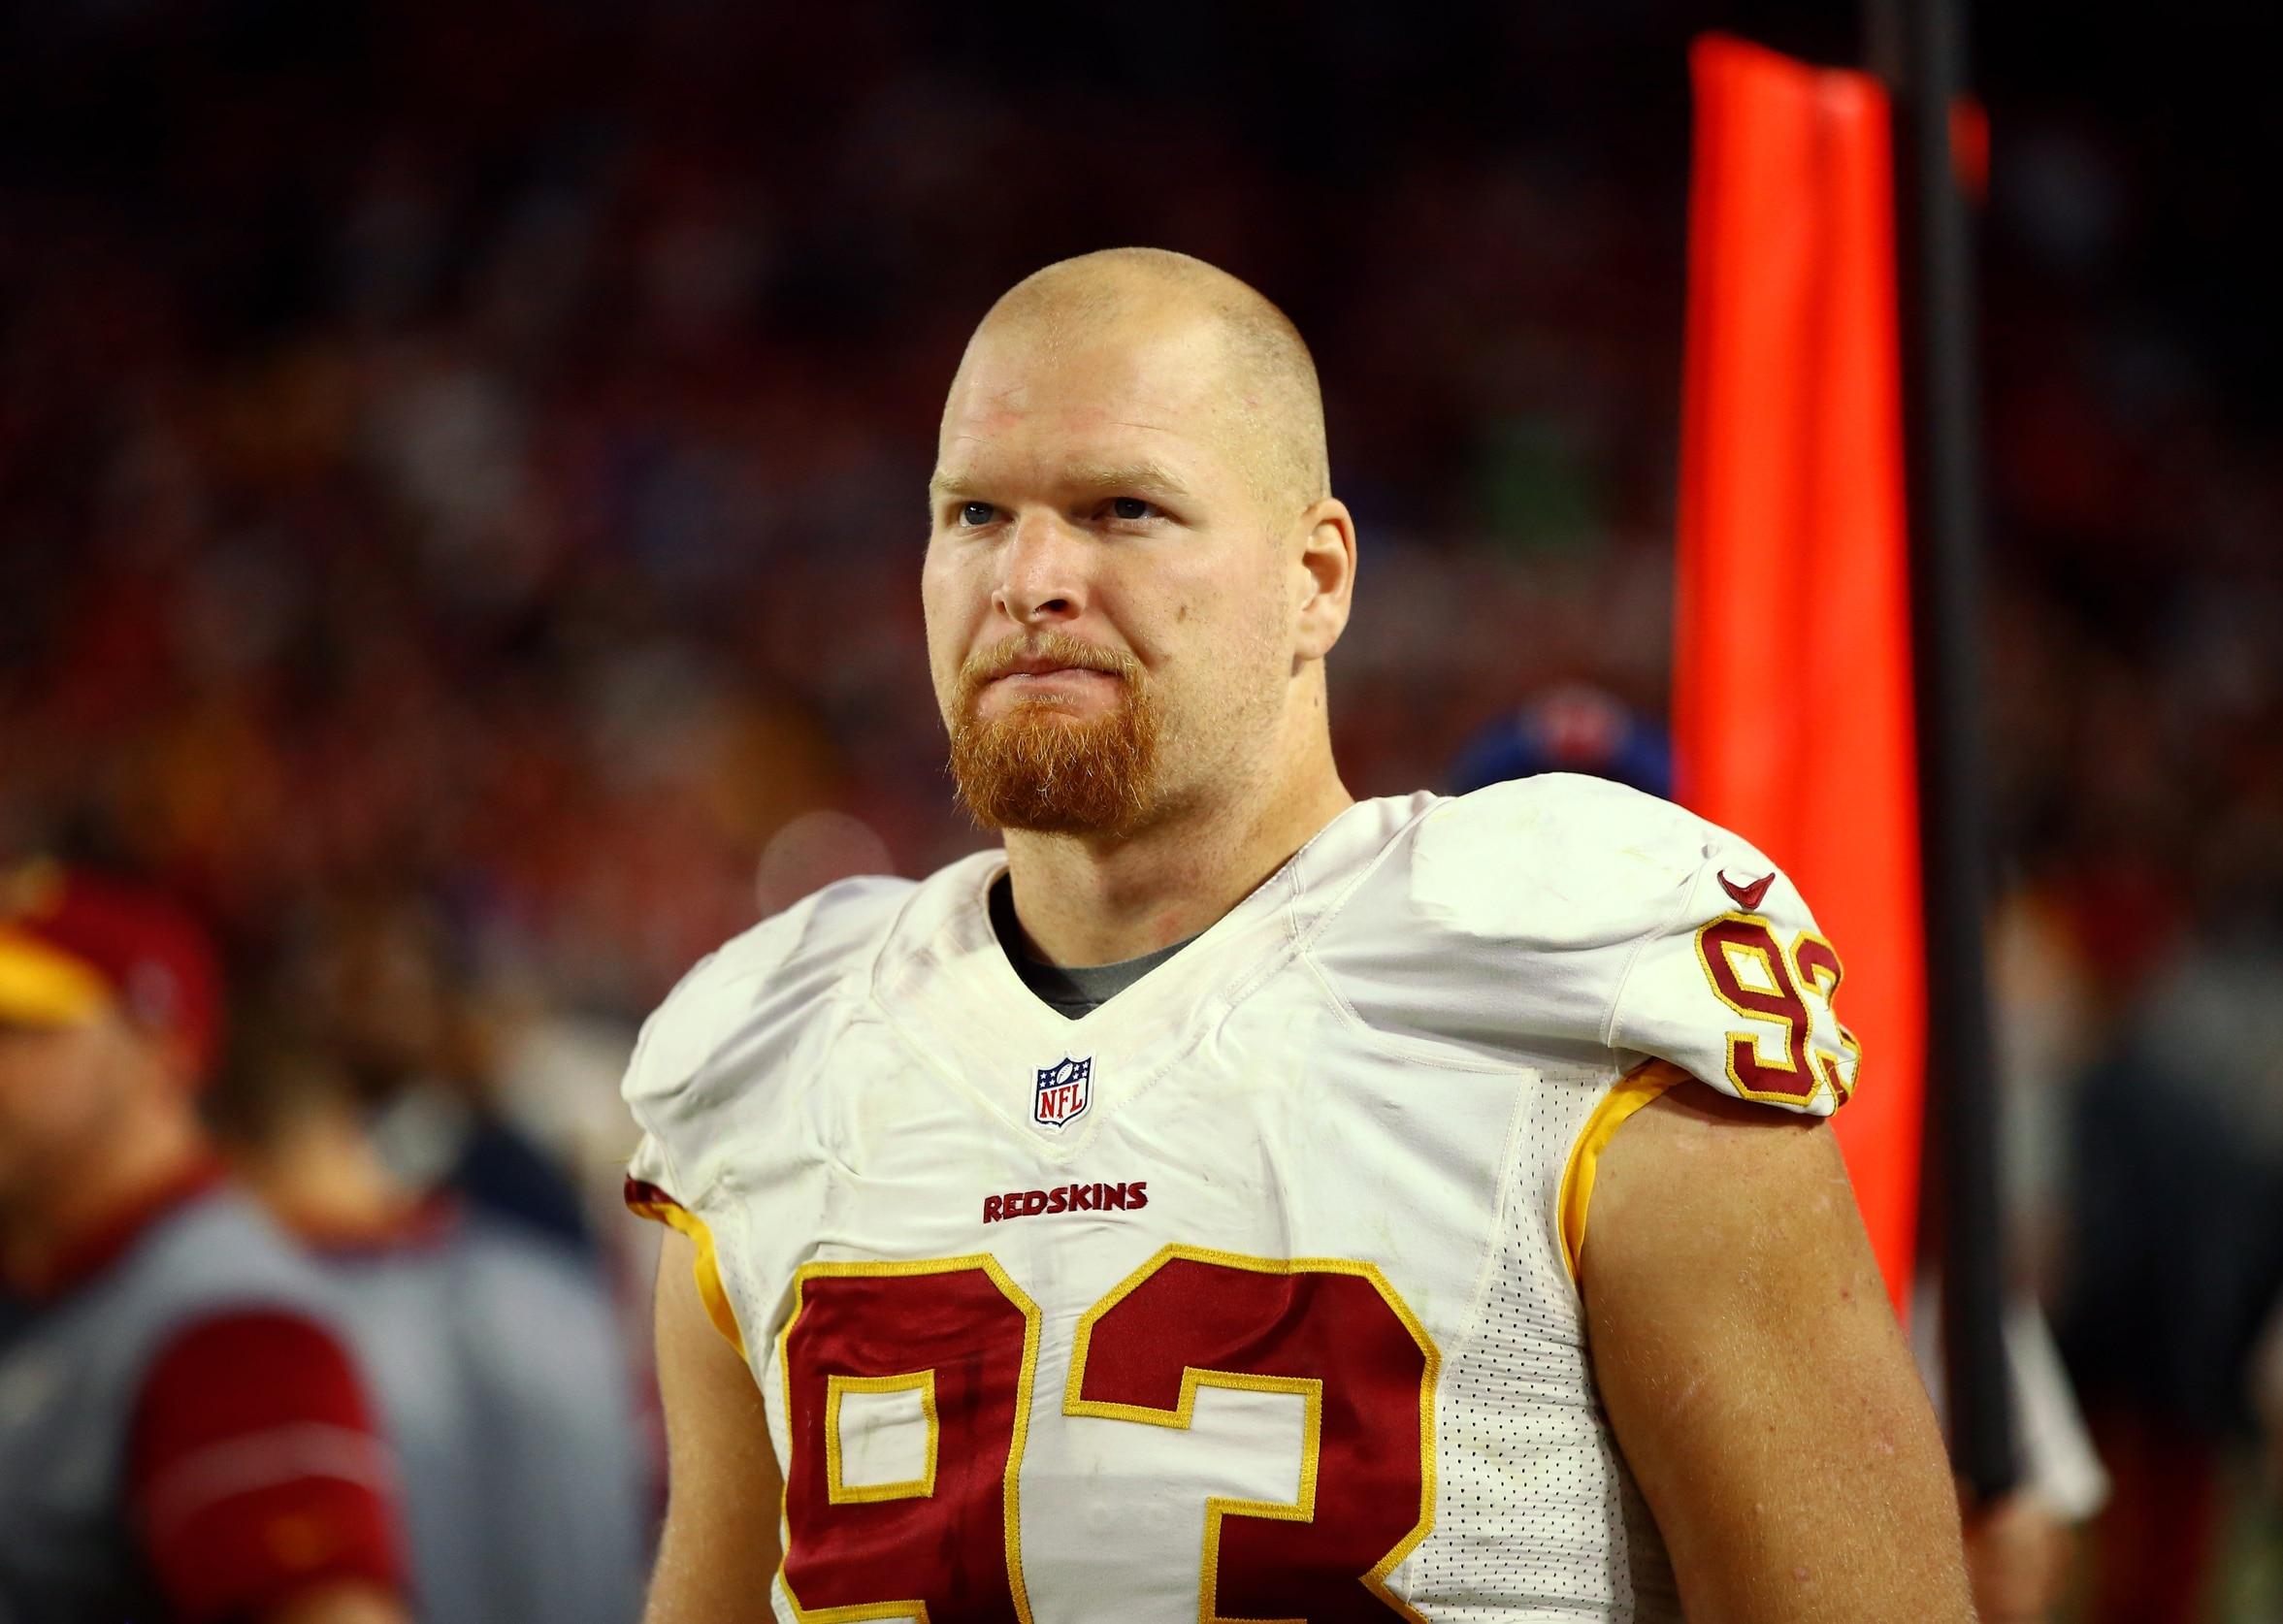 Trent Murphy is facing a four-game suspension for PEDs